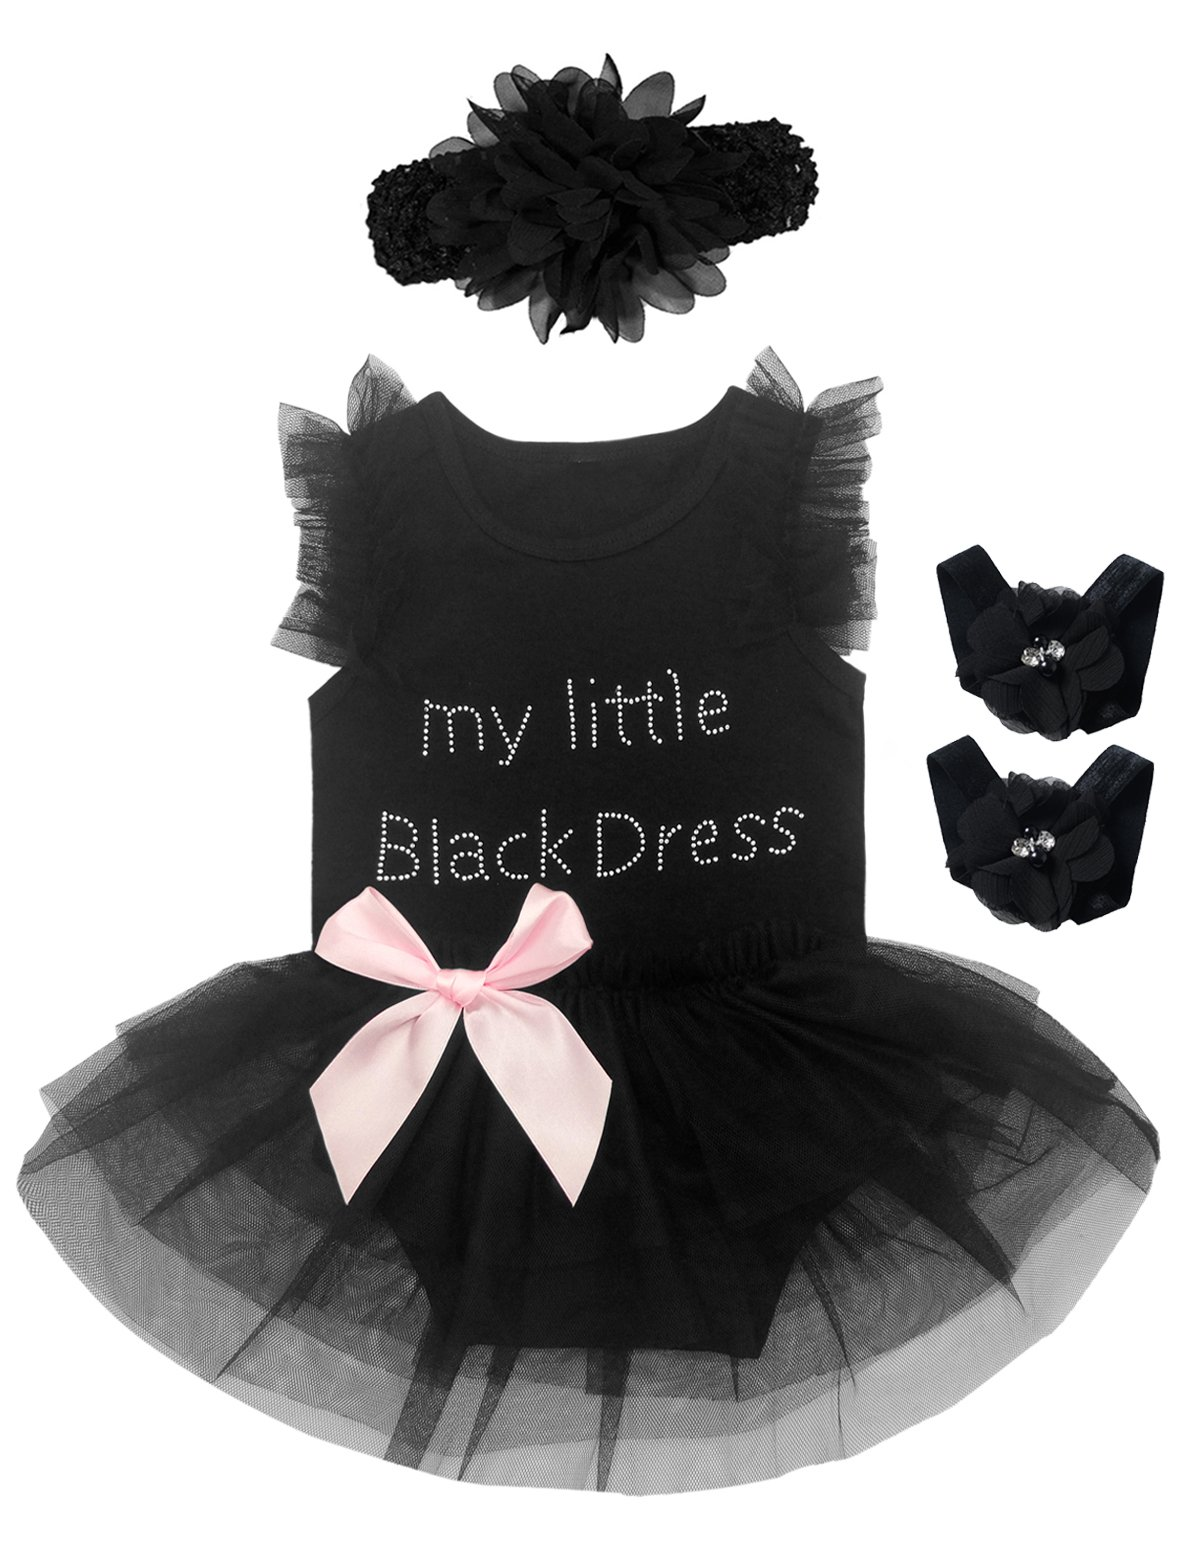 3 Pieces Baby Girls' Little Black Dress Romper with Headband and Foot Jewelry (3-6 Months, Black)